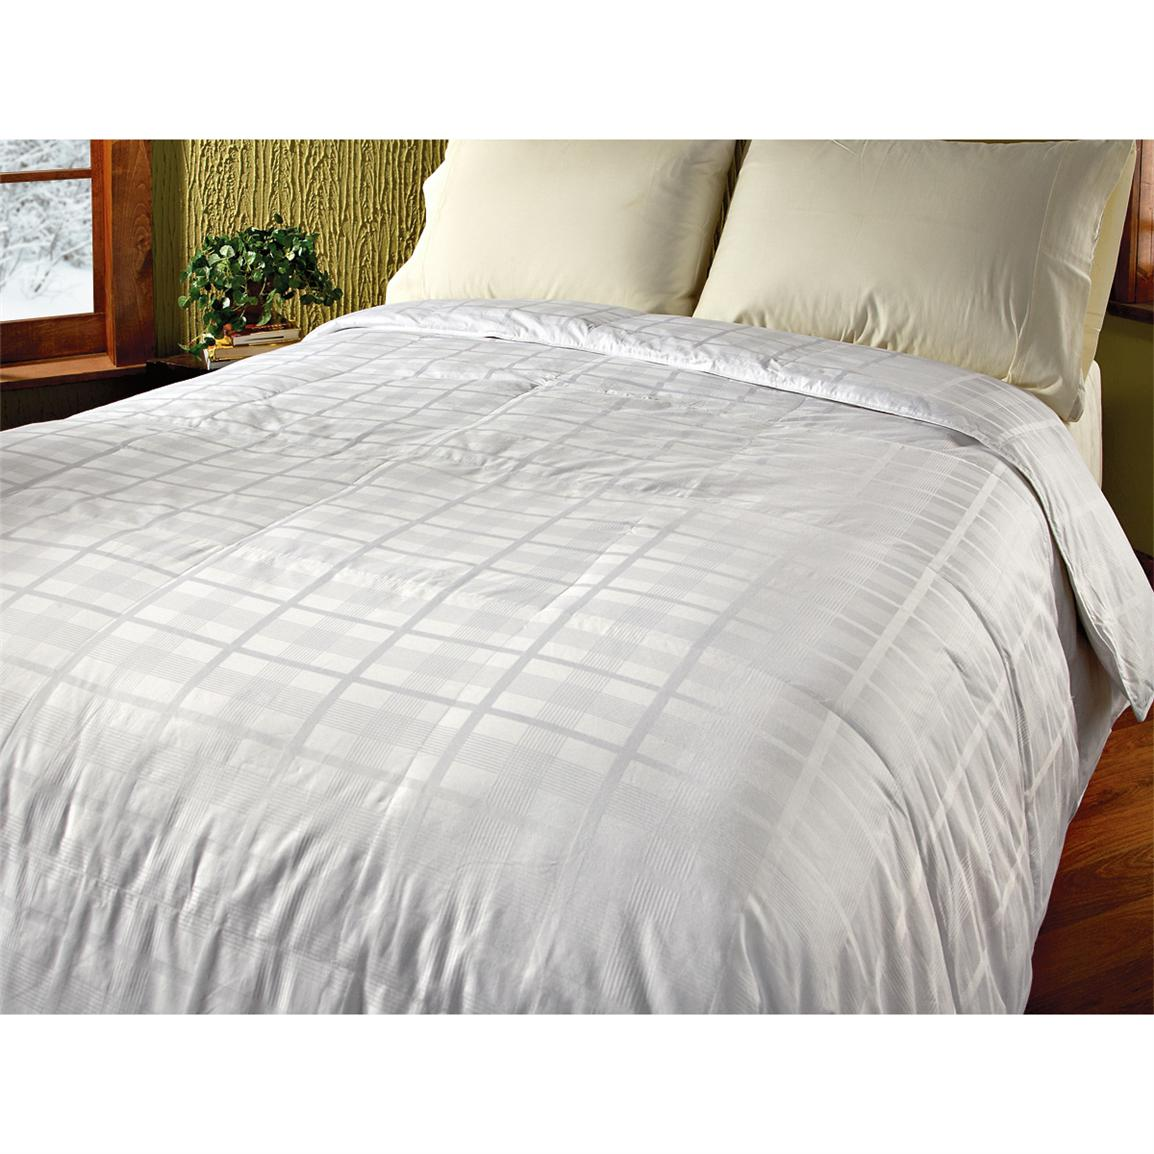 320 Thread Count Pinstripe Windowpane Feather / Down Comforter